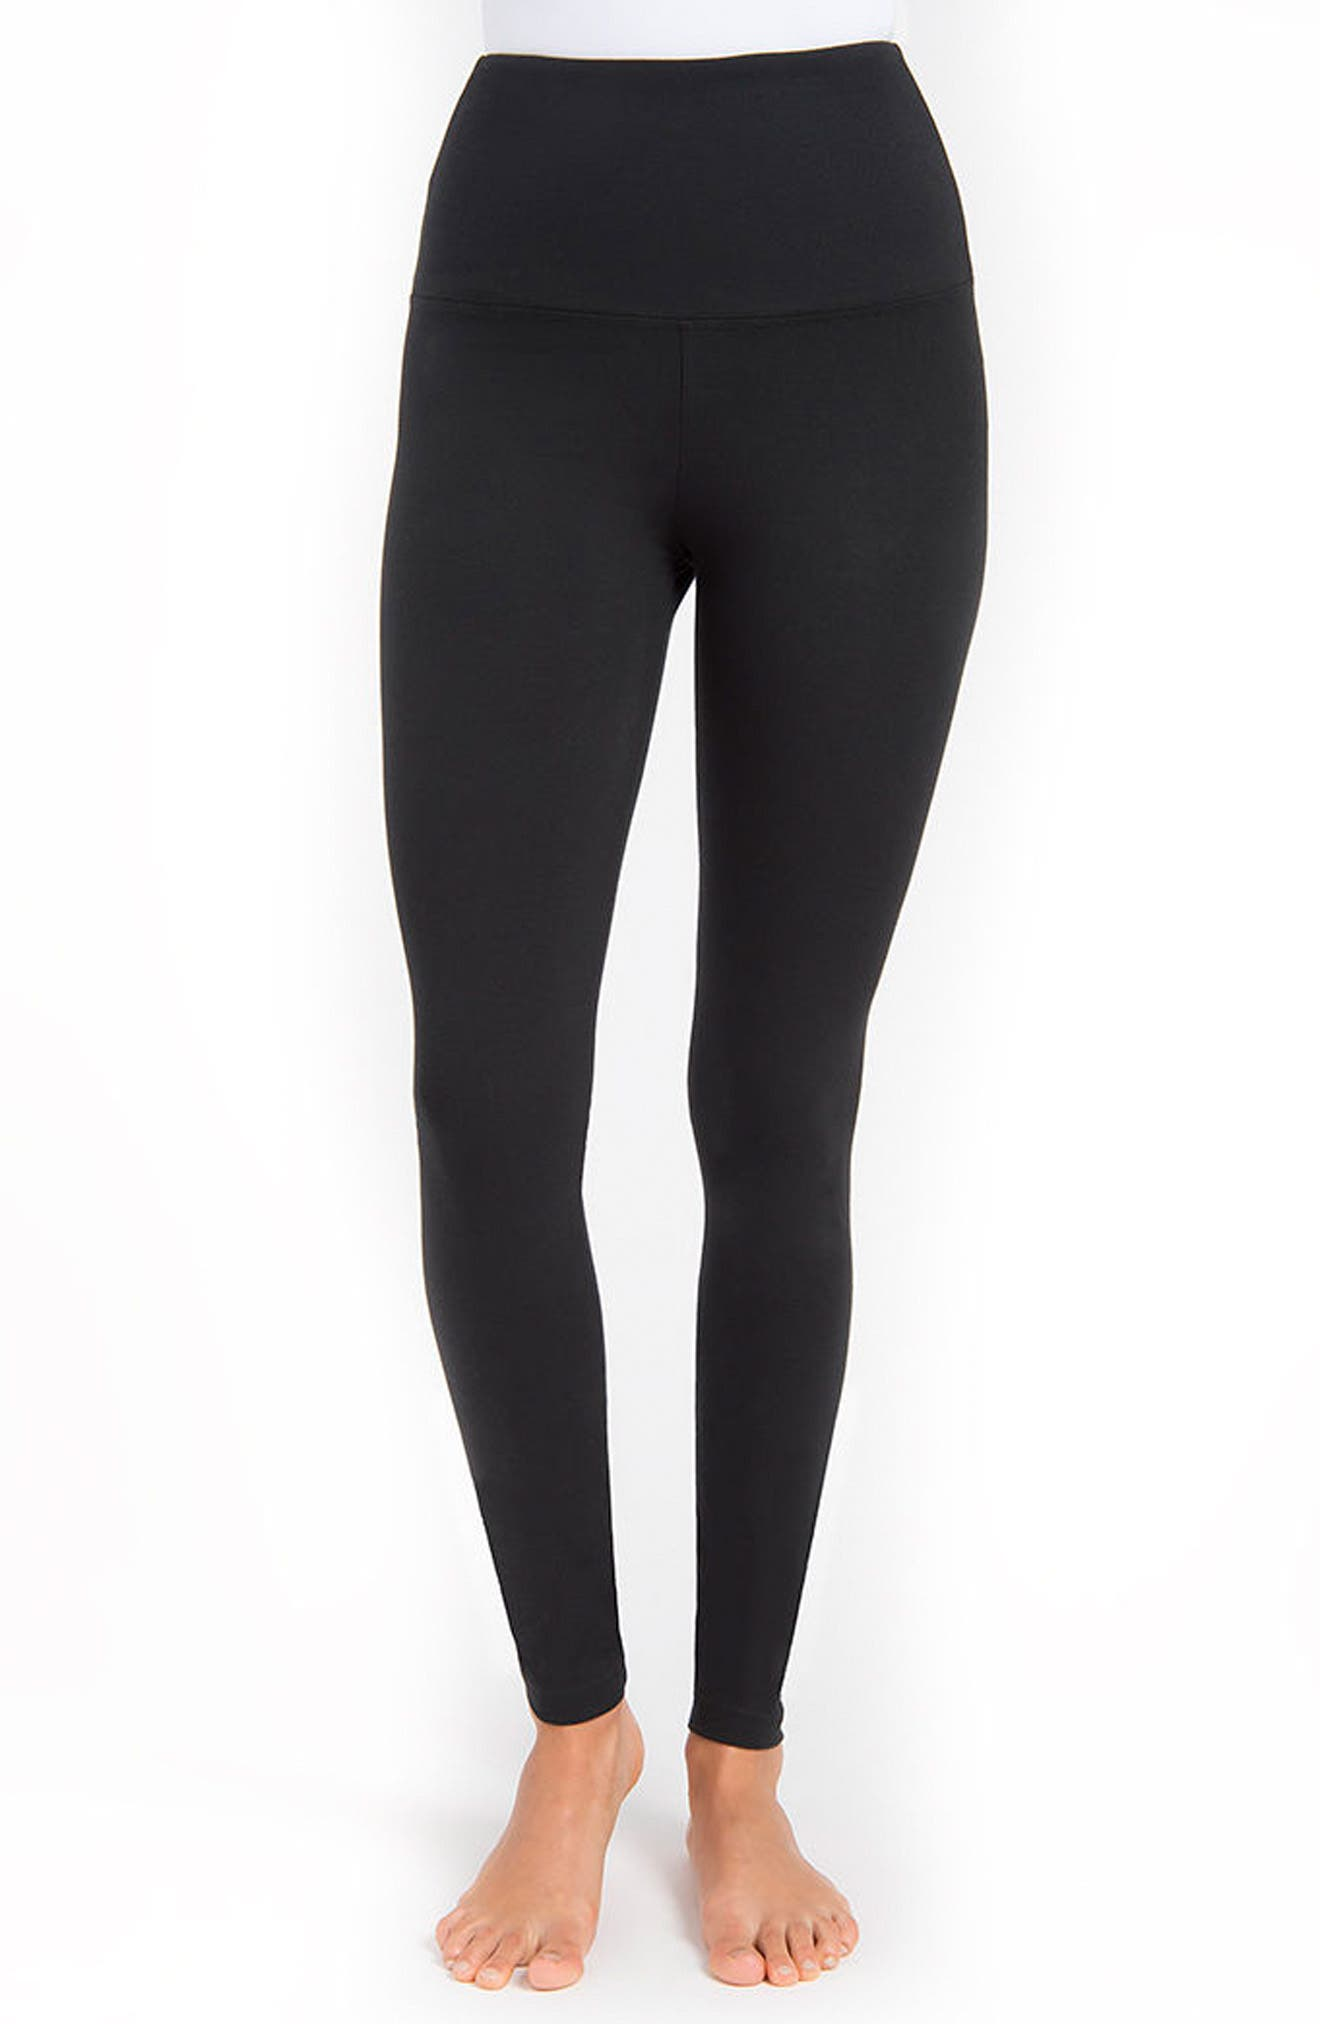 Lysse Control Top High Waist Leggings, Black